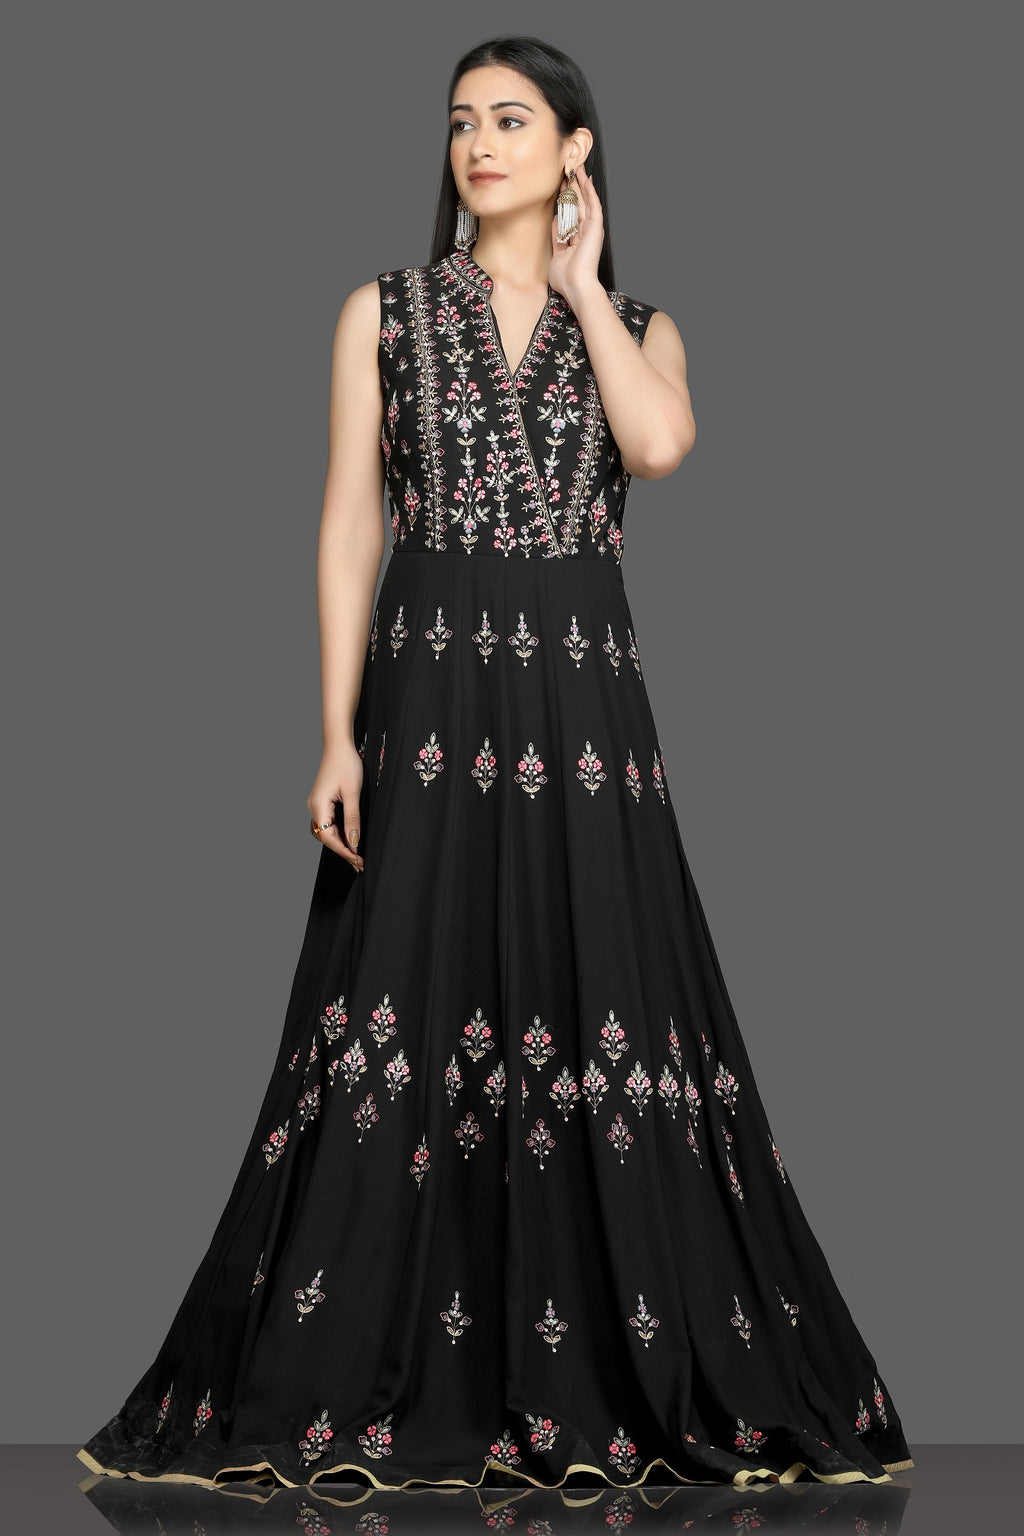 Shop gorgeous black embroidered sleeveless Anarkali gown online in USA. Flaunt your sartorial choices on special occasions with beautiful designer gowns, Anarkali suits, traditional salwar suits, Indian lehengas from Pure Elegance Indian fashion boutique in USA. -full view